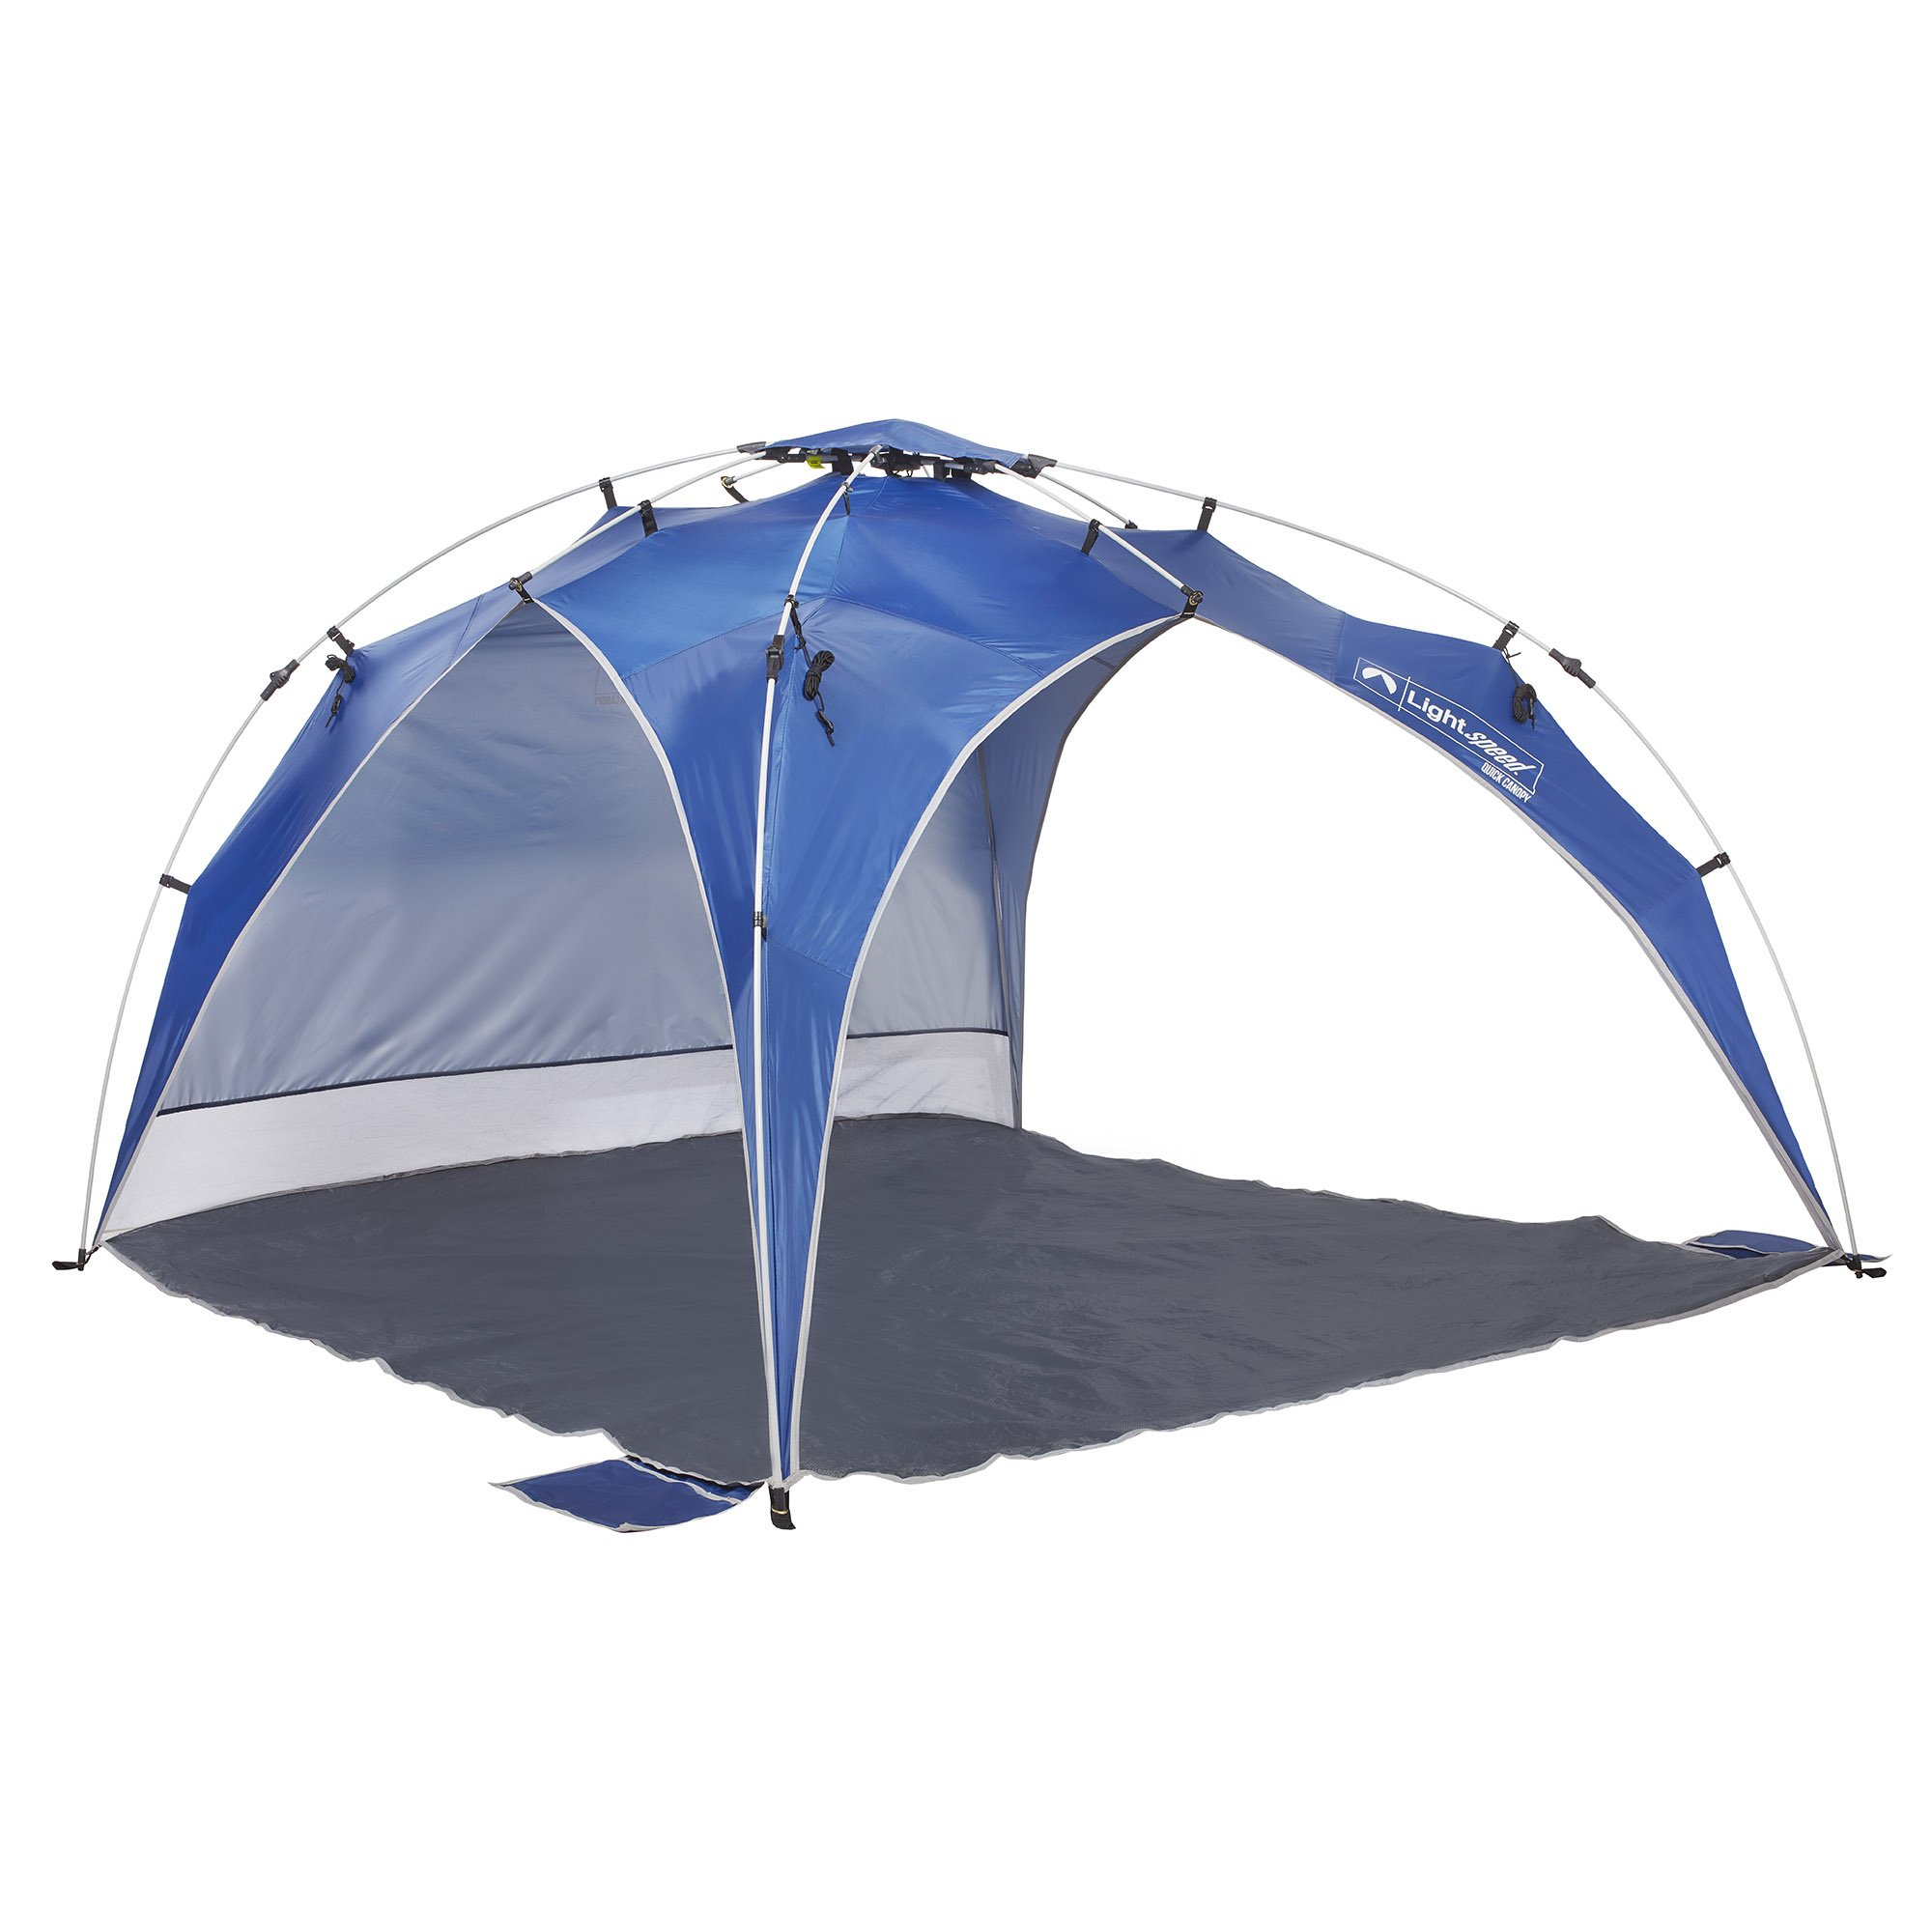 galleon lightspeed outdoors quick canopy instant pop up shade tent. Black Bedroom Furniture Sets. Home Design Ideas